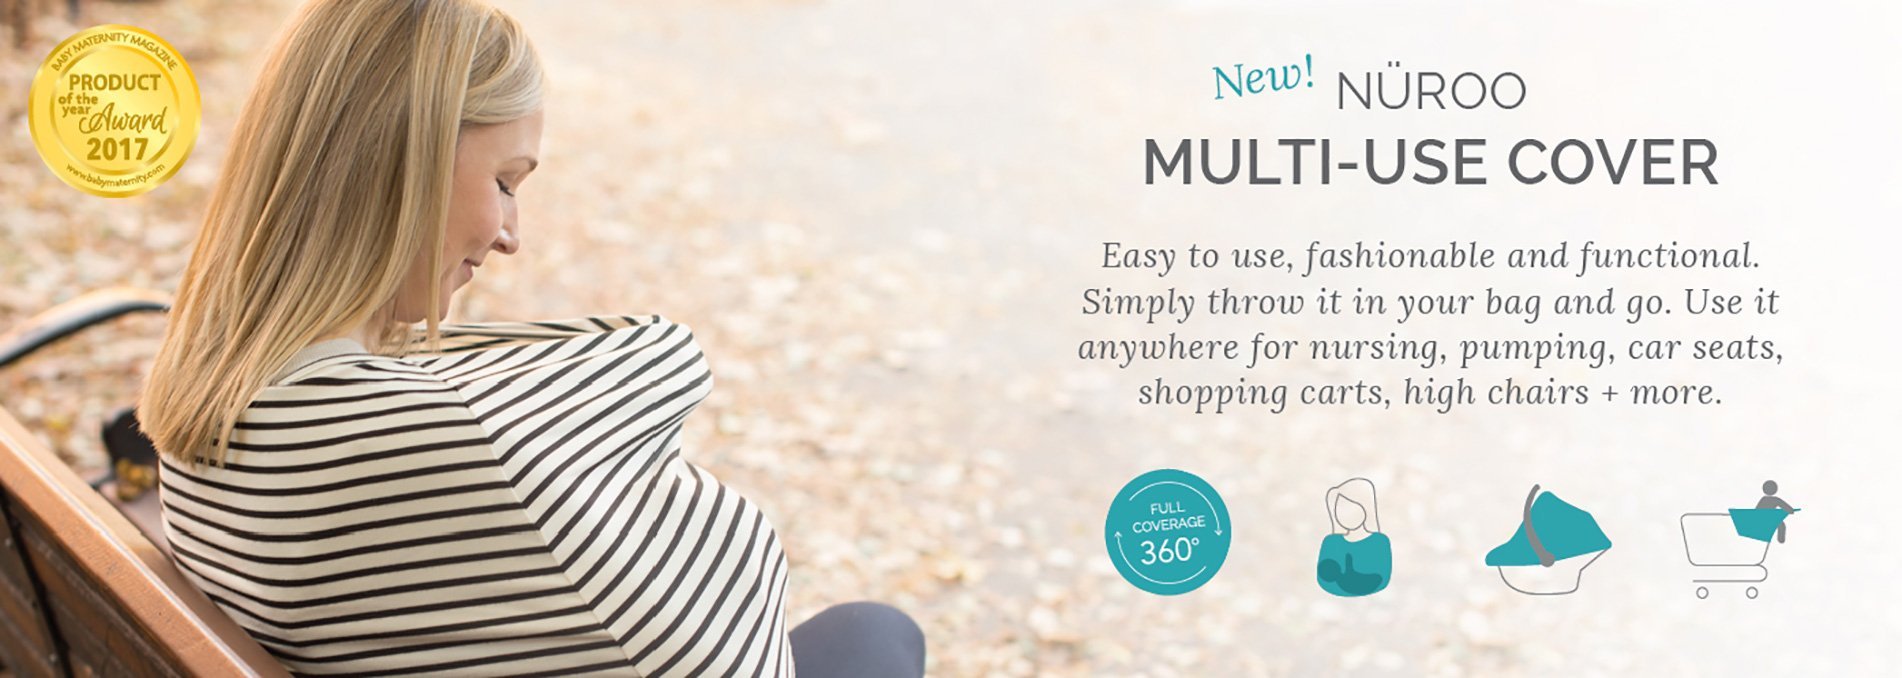 NuRoo MultiUSe Scarf